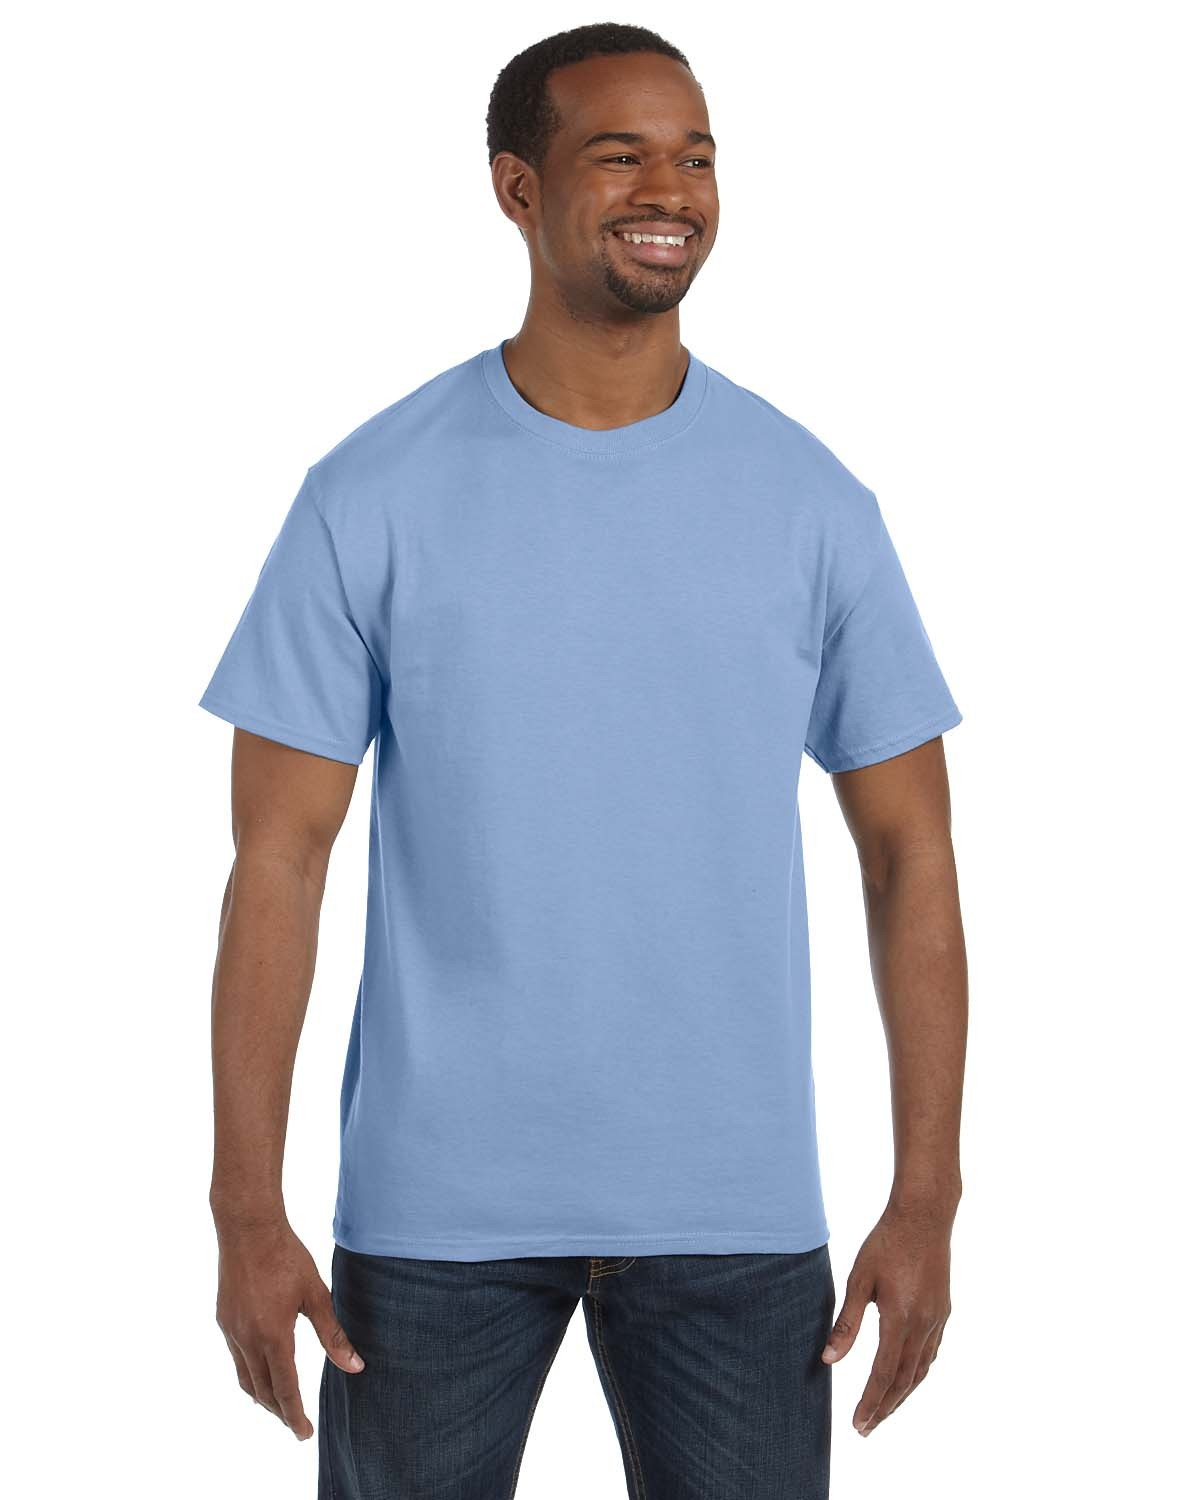 5250T Hanes LIGHT BLUE